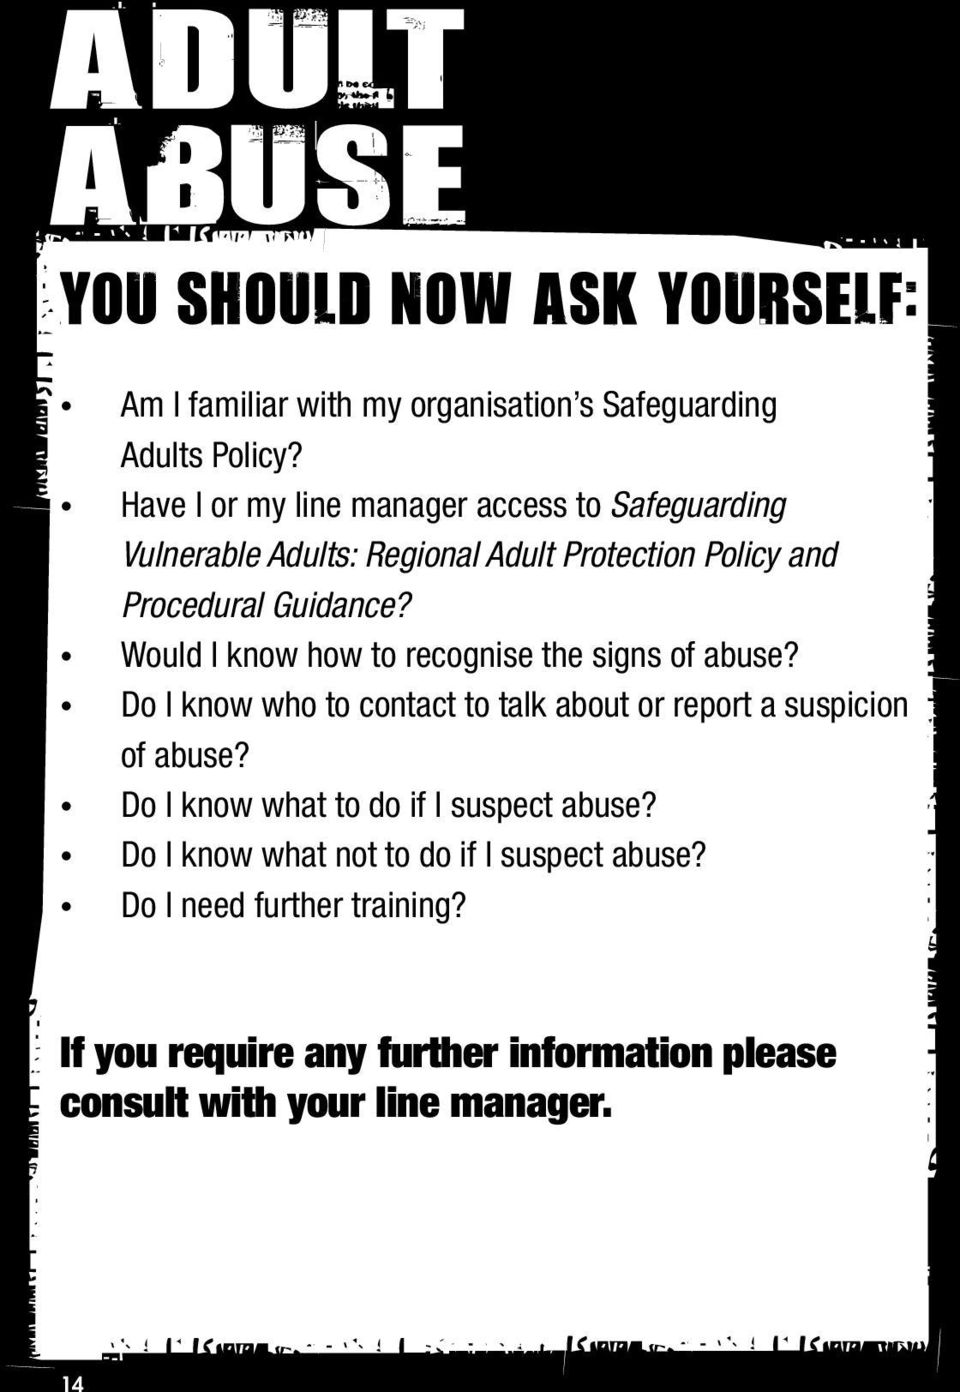 Would I know how to recognise the signs of abuse? Do I know who to contact to talk about or report a suspicion of abuse?